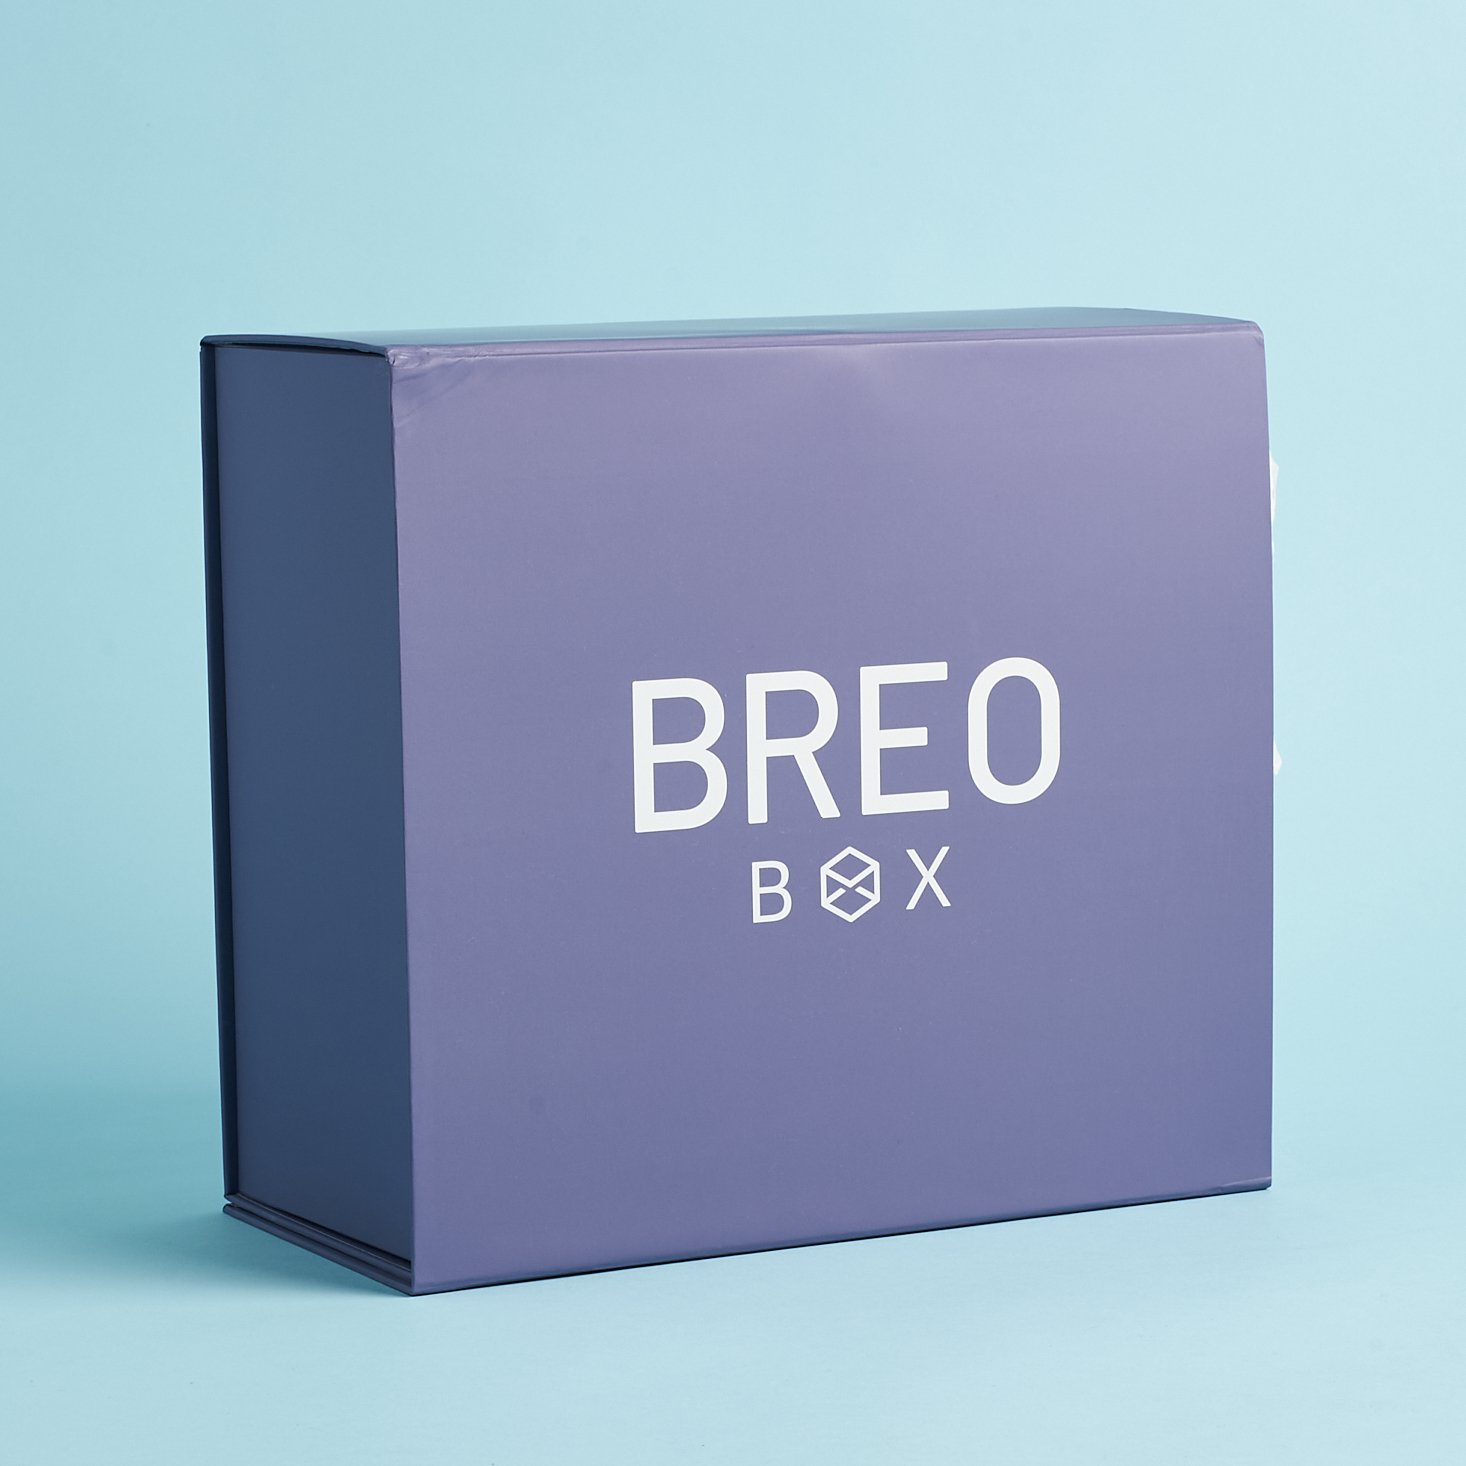 Breo Box Cyber Monday Sale – $50 Off Your First Box + 40% Off Shop!